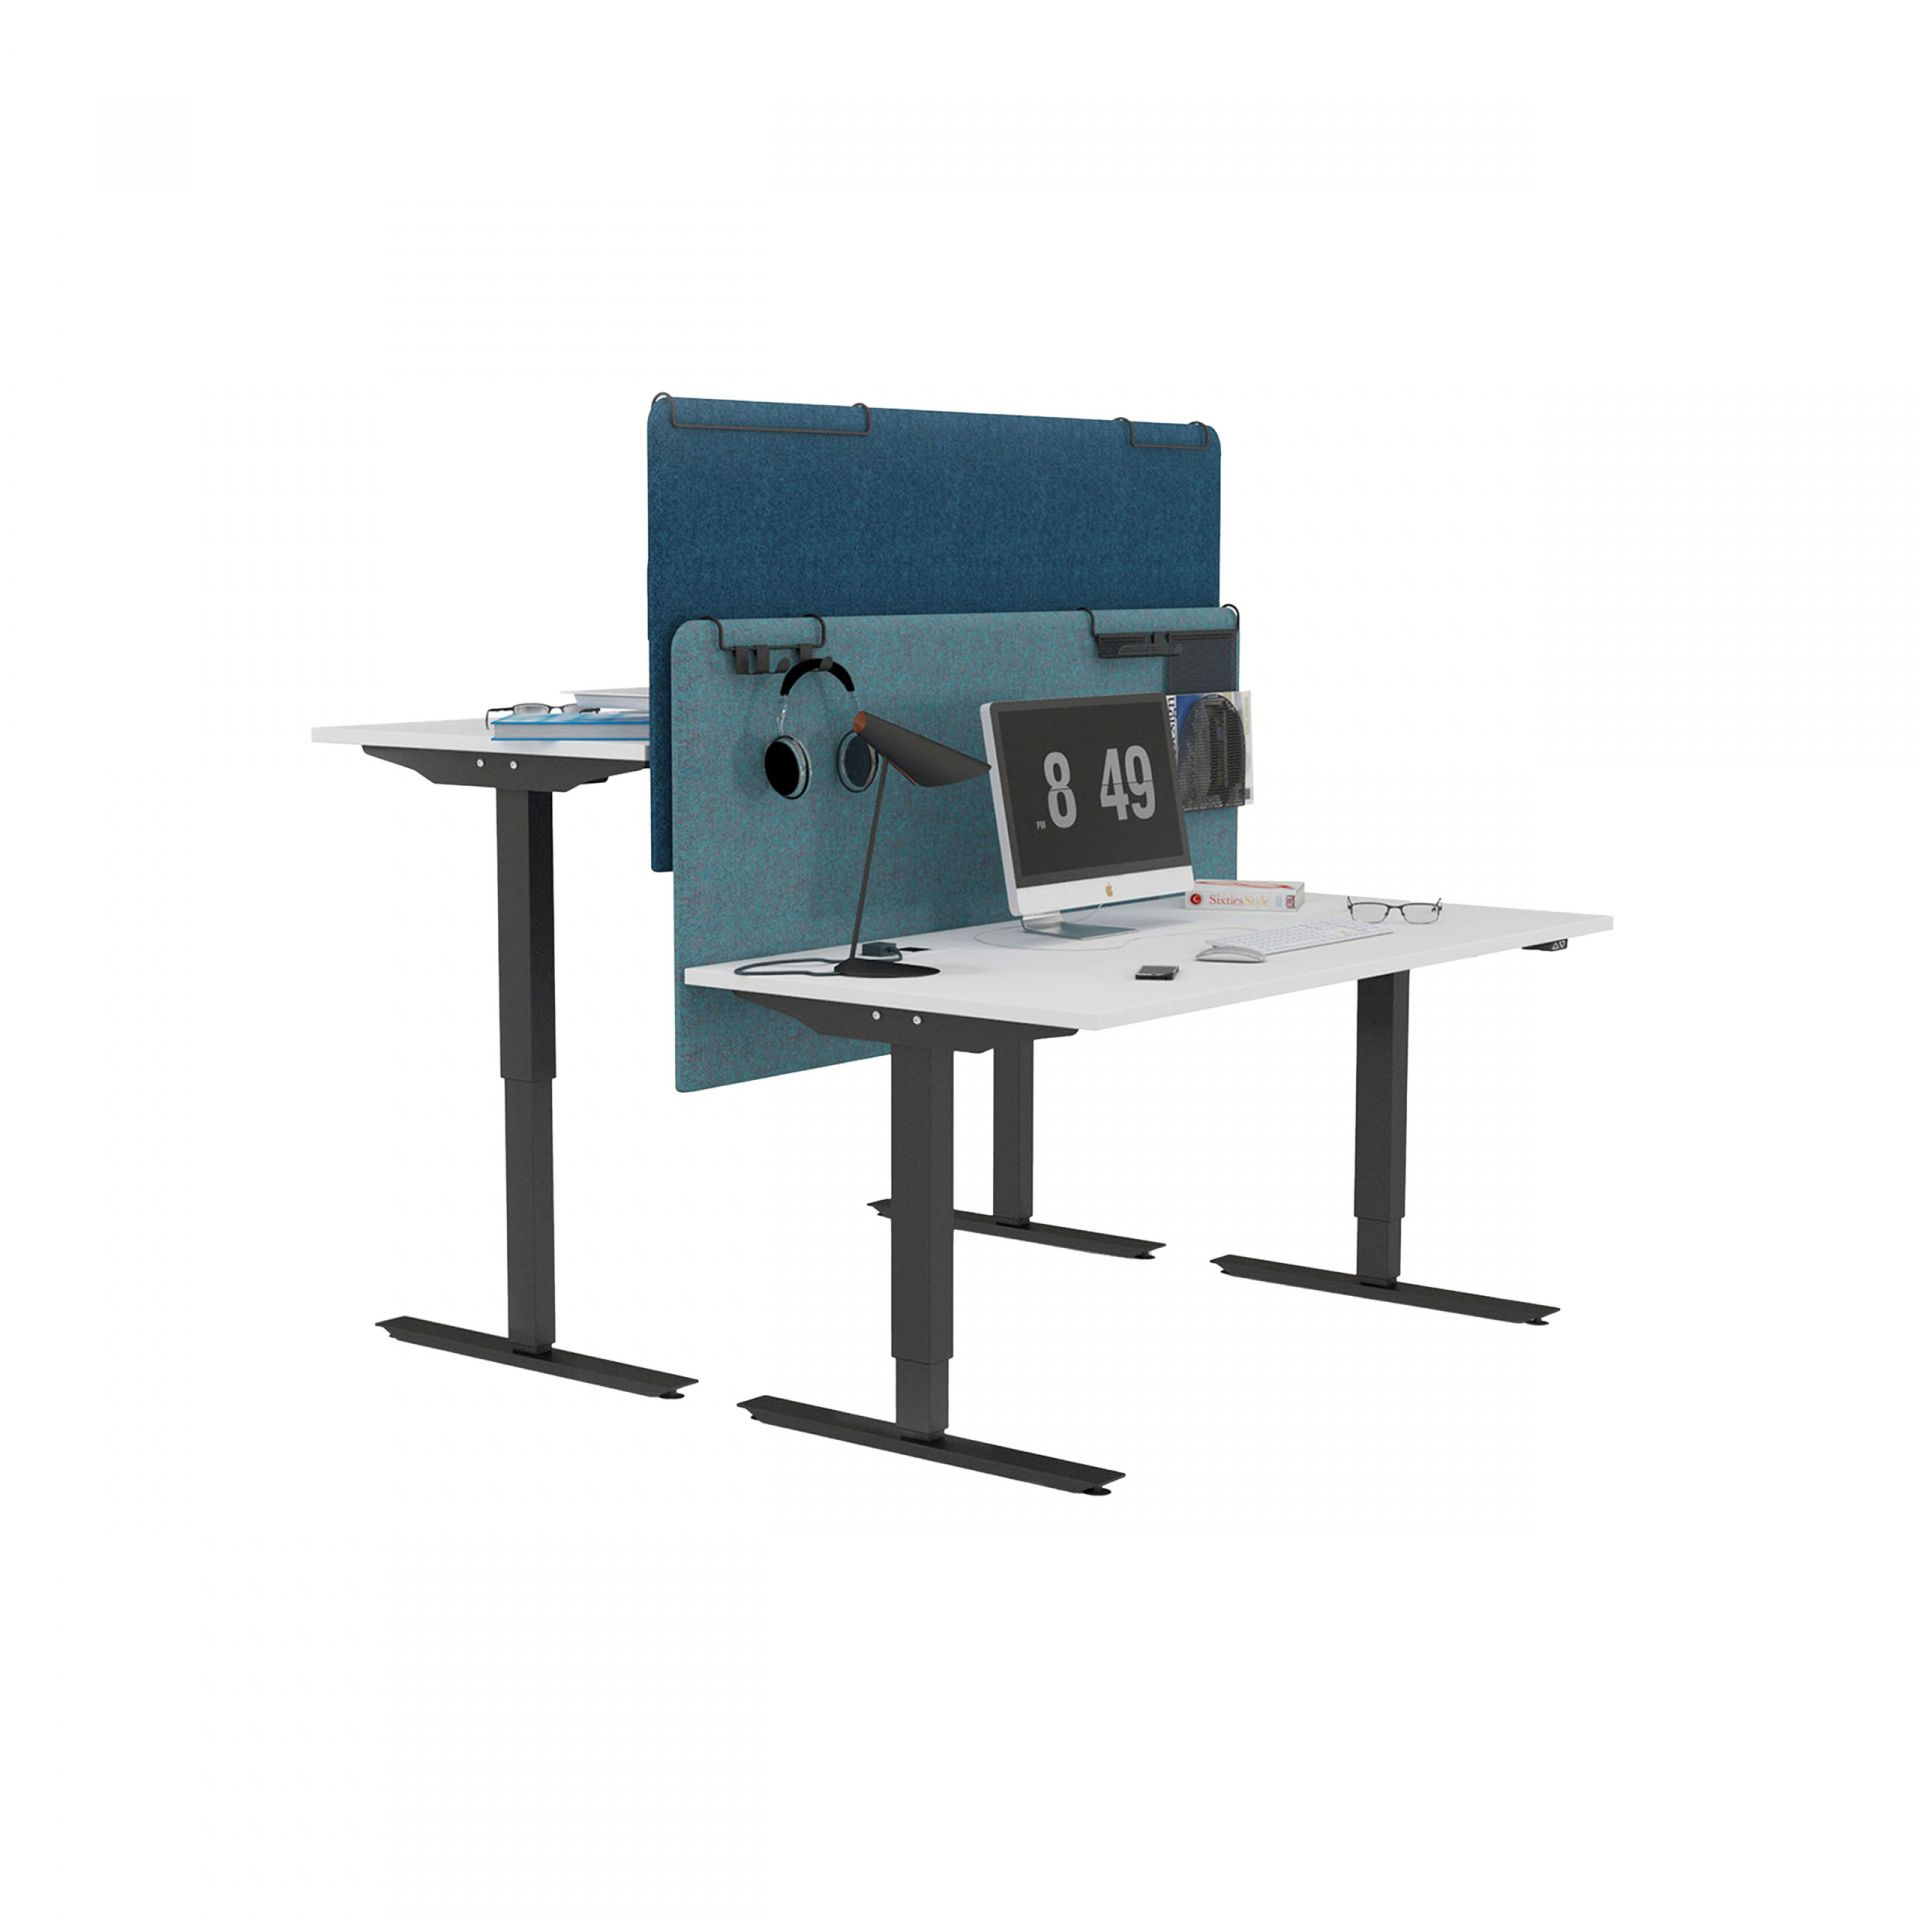 Active Desk, sit/stand